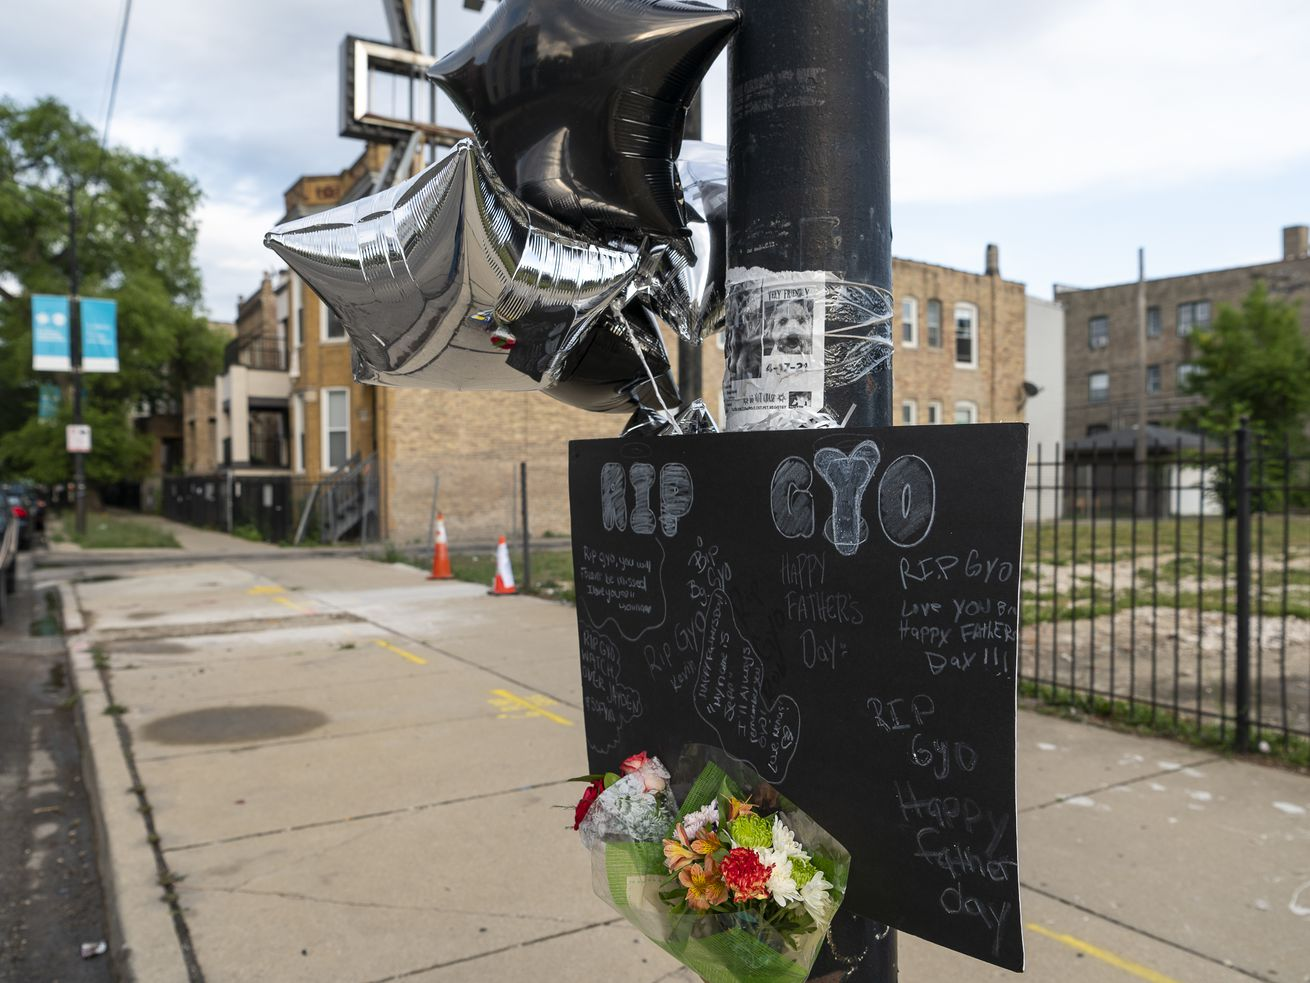 Man killed, girlfriend critically wounded in attack during Puerto Rican Day Parade in Humboldt Park. 'Such an amazing friend.'